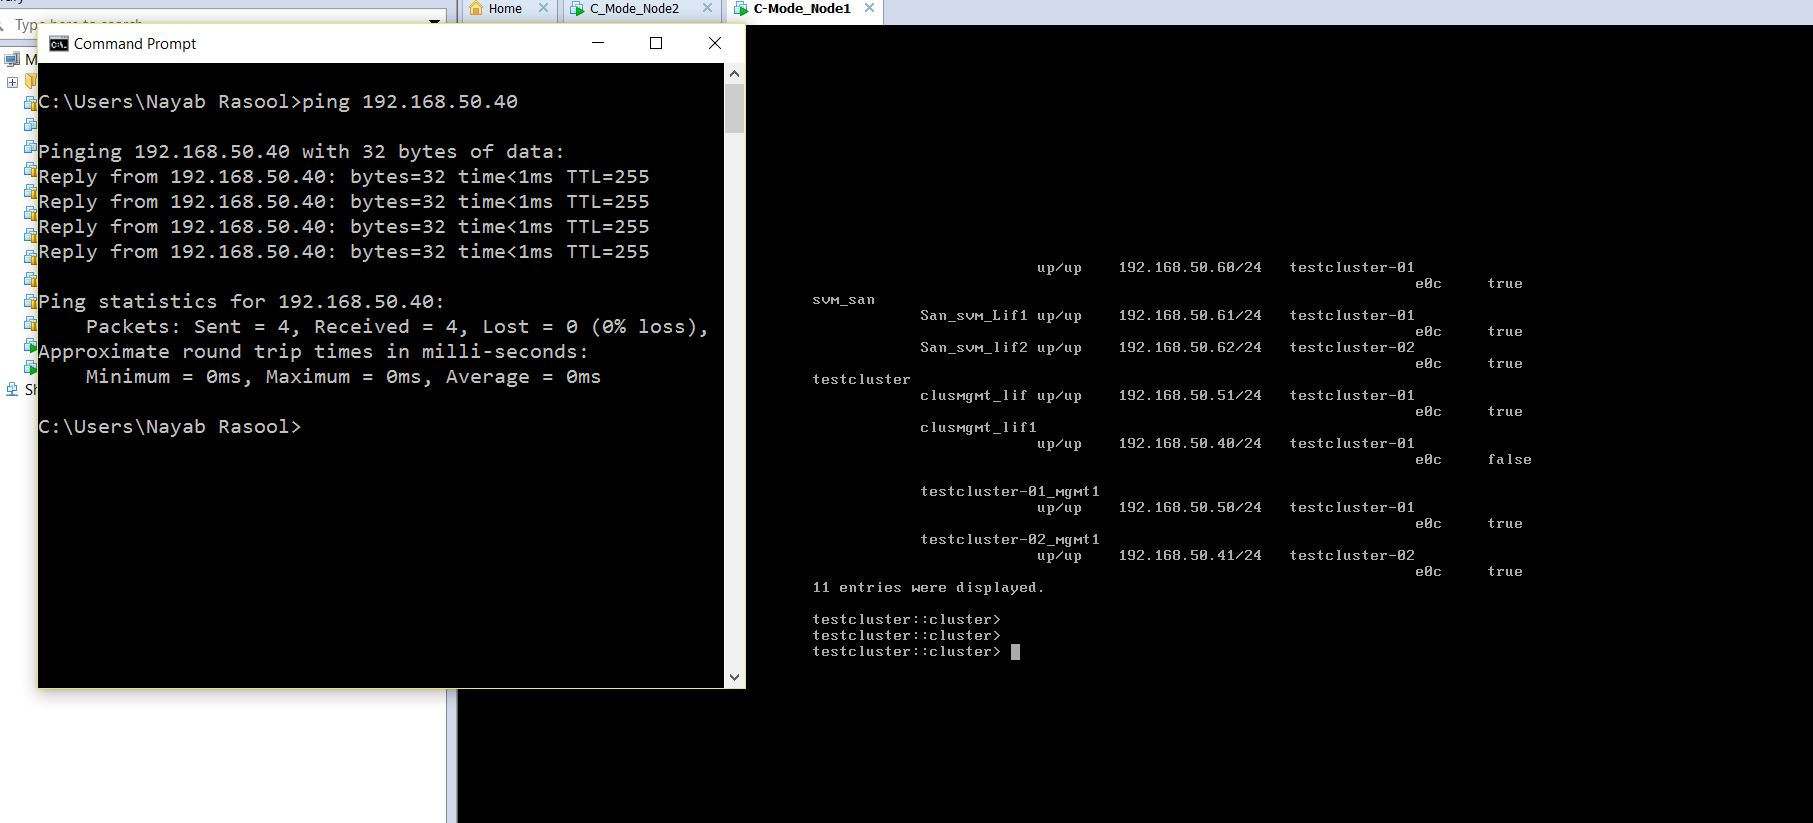 Unable to ping node and cluster management IP from host ... Vmware Ping Vm From Host